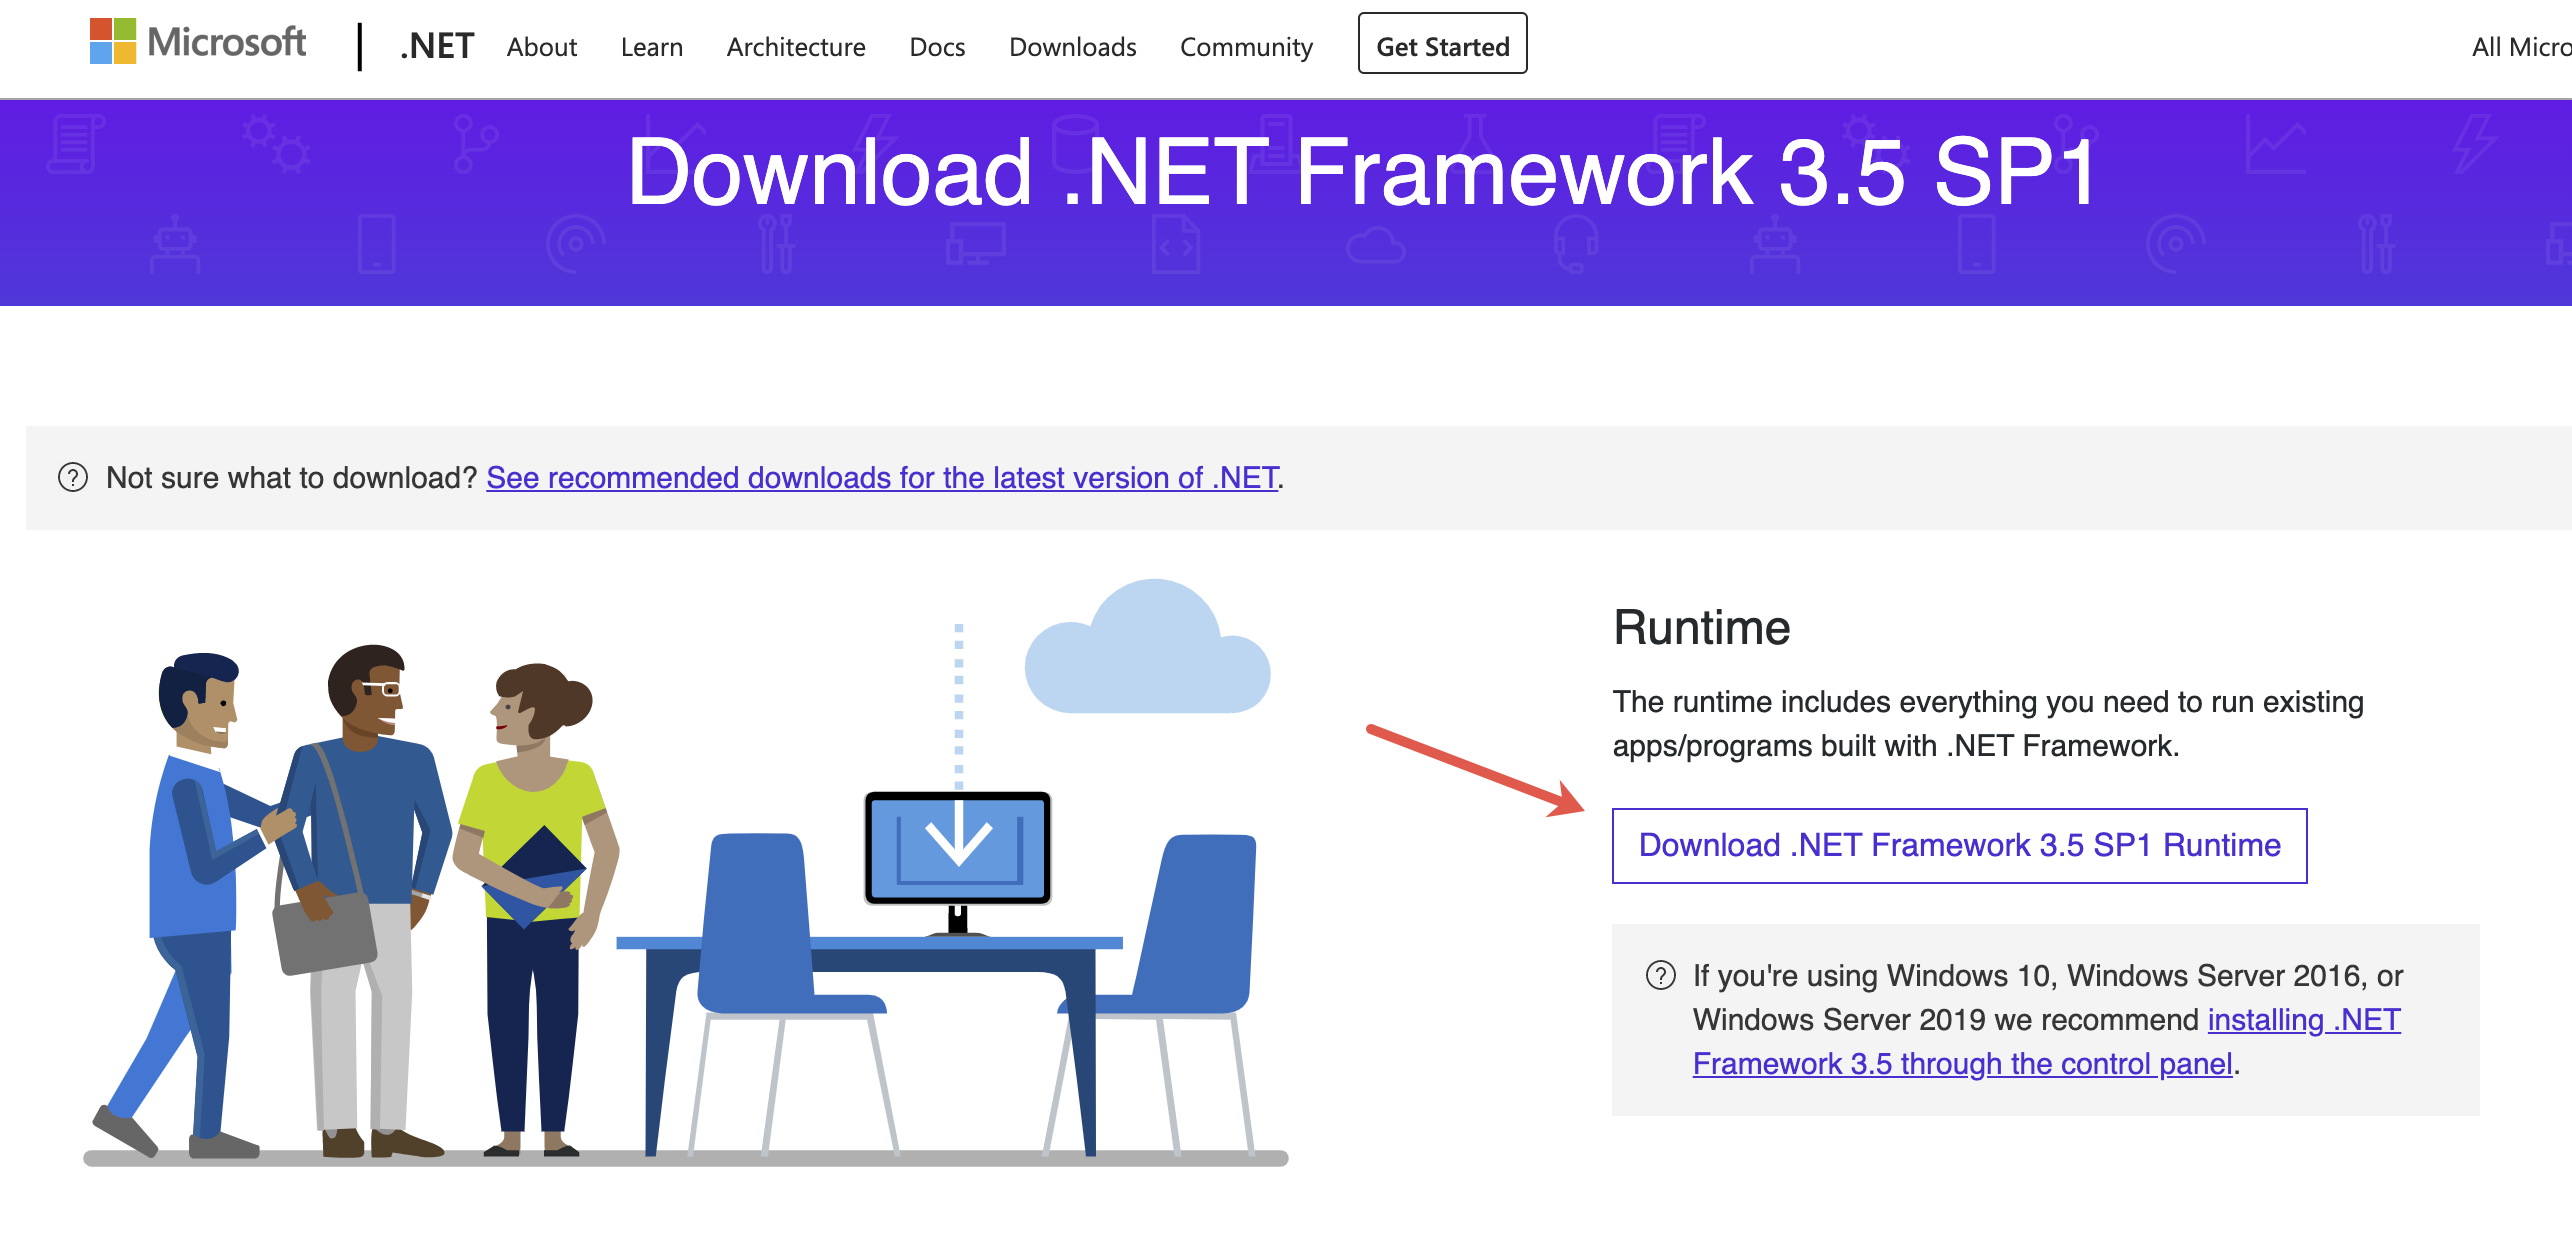 Go to Microsoft .NET official site and click on the Download .NET Framework 3.5 SP1 Runtime button.